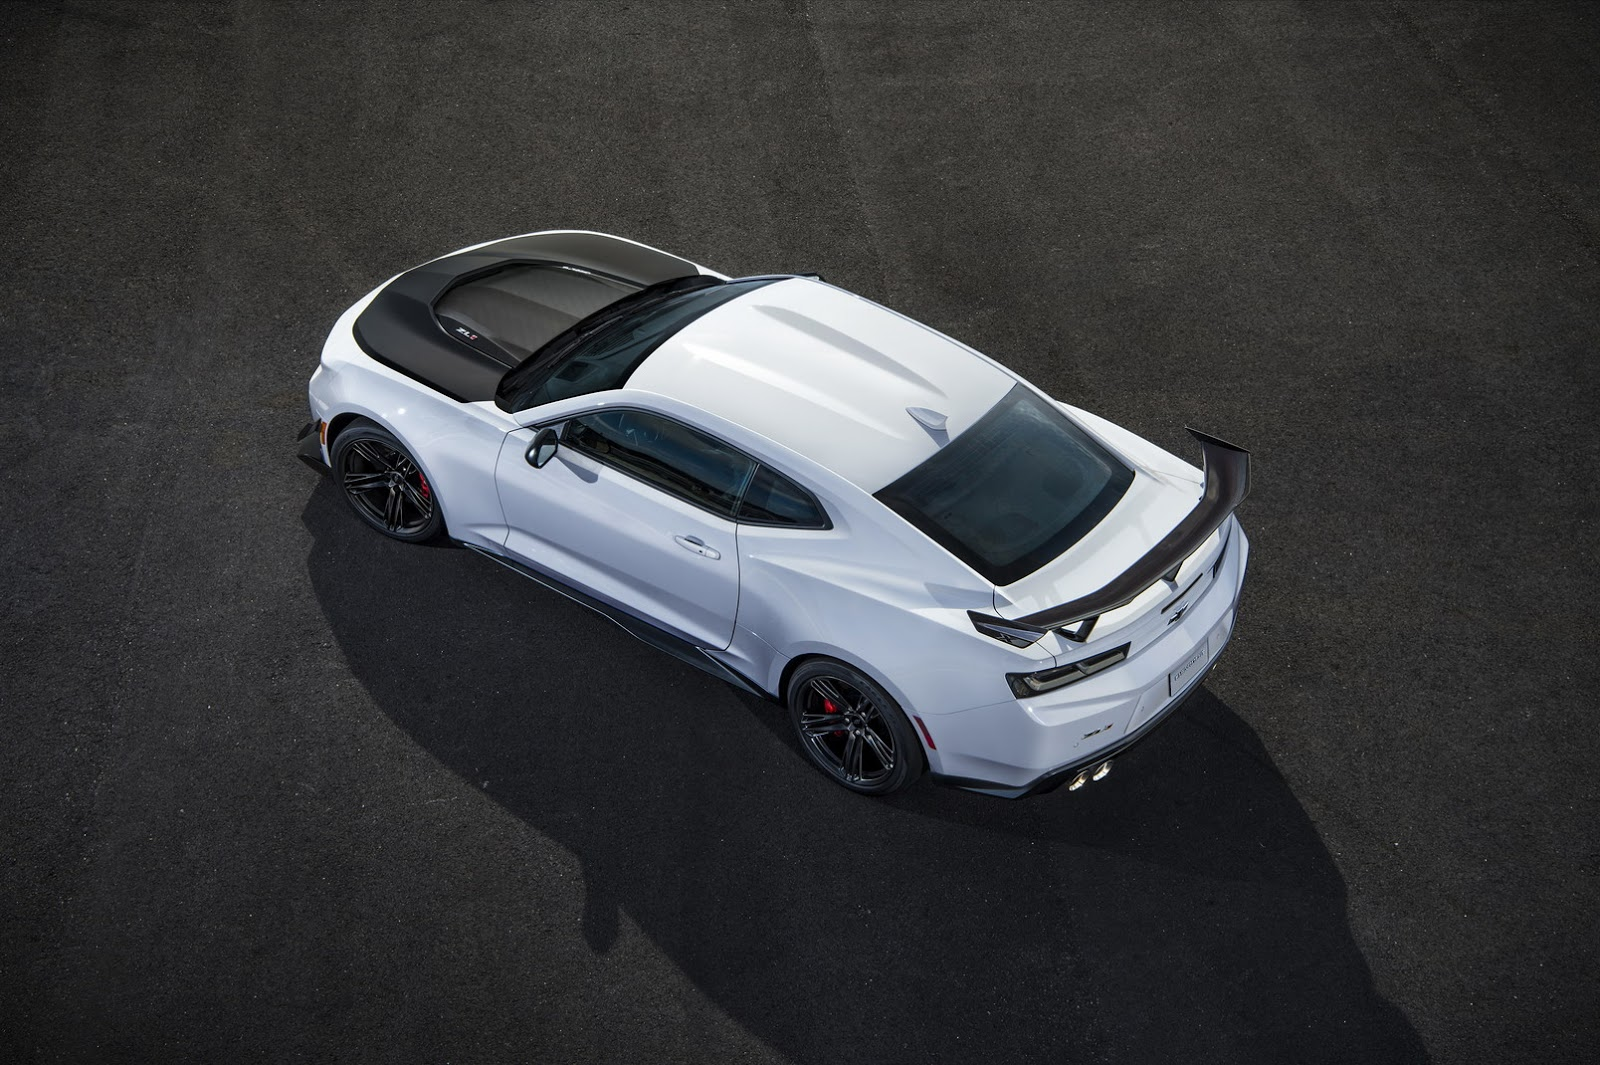 Chrome 2018 Chevrolet Camaro ZL1 1LE with Glass Roof Is a Mind-Blowing Mashup - autoevolution